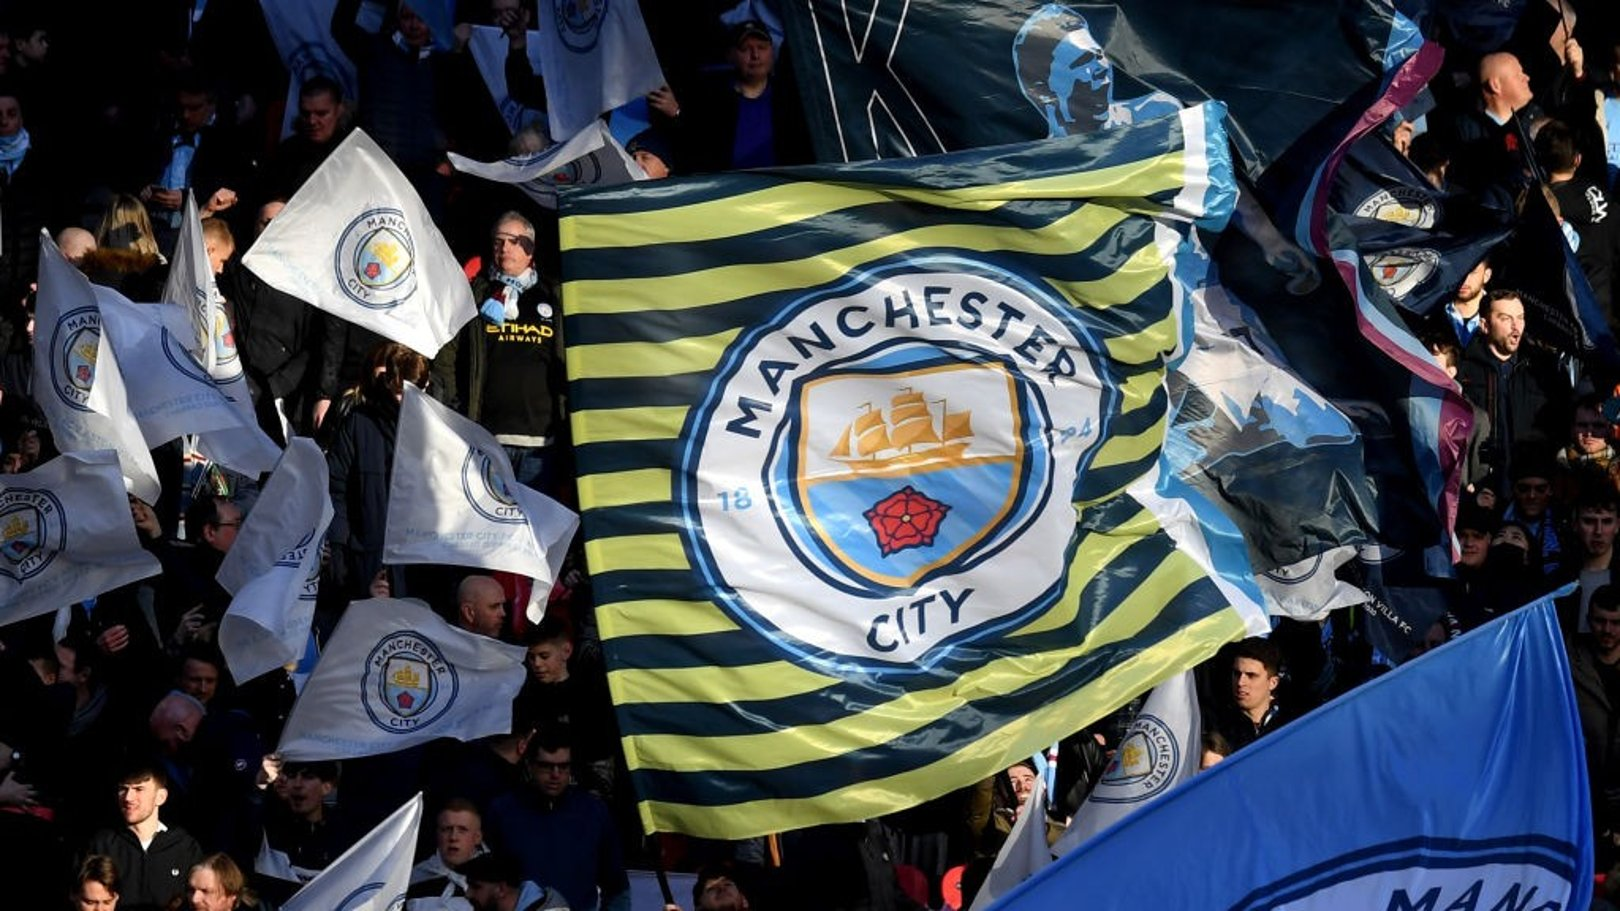 Display your City flag or banner at Wembley